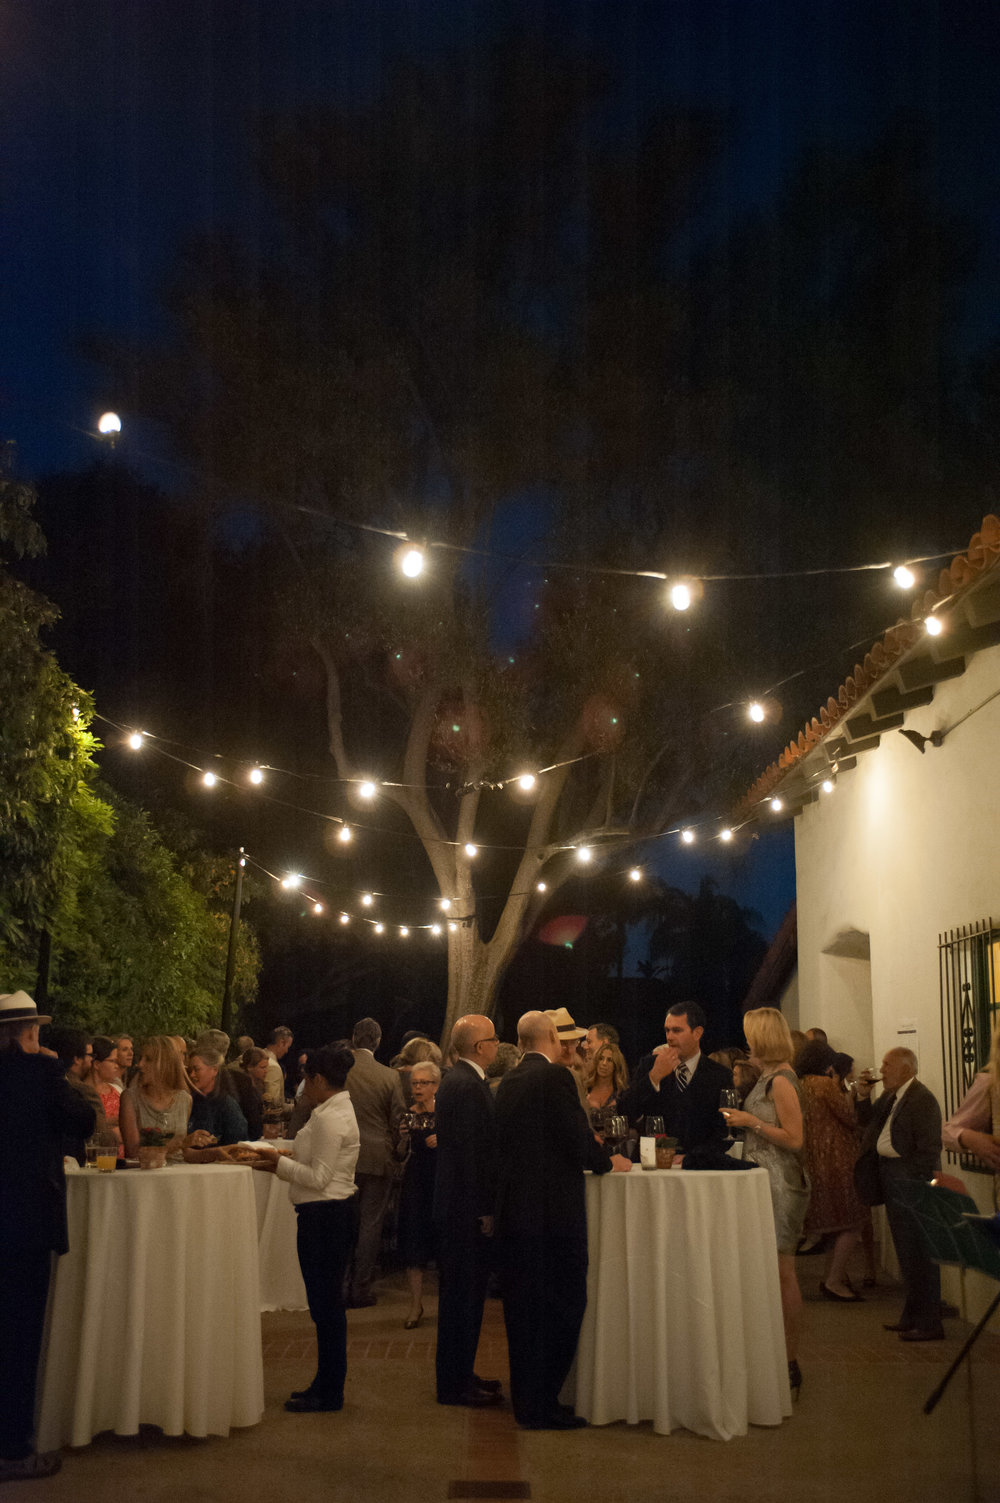 santabarbarawedding.com | Location Spotlight | Wedding Location | Serra Hall | Old Mission | Nighttime Dancing